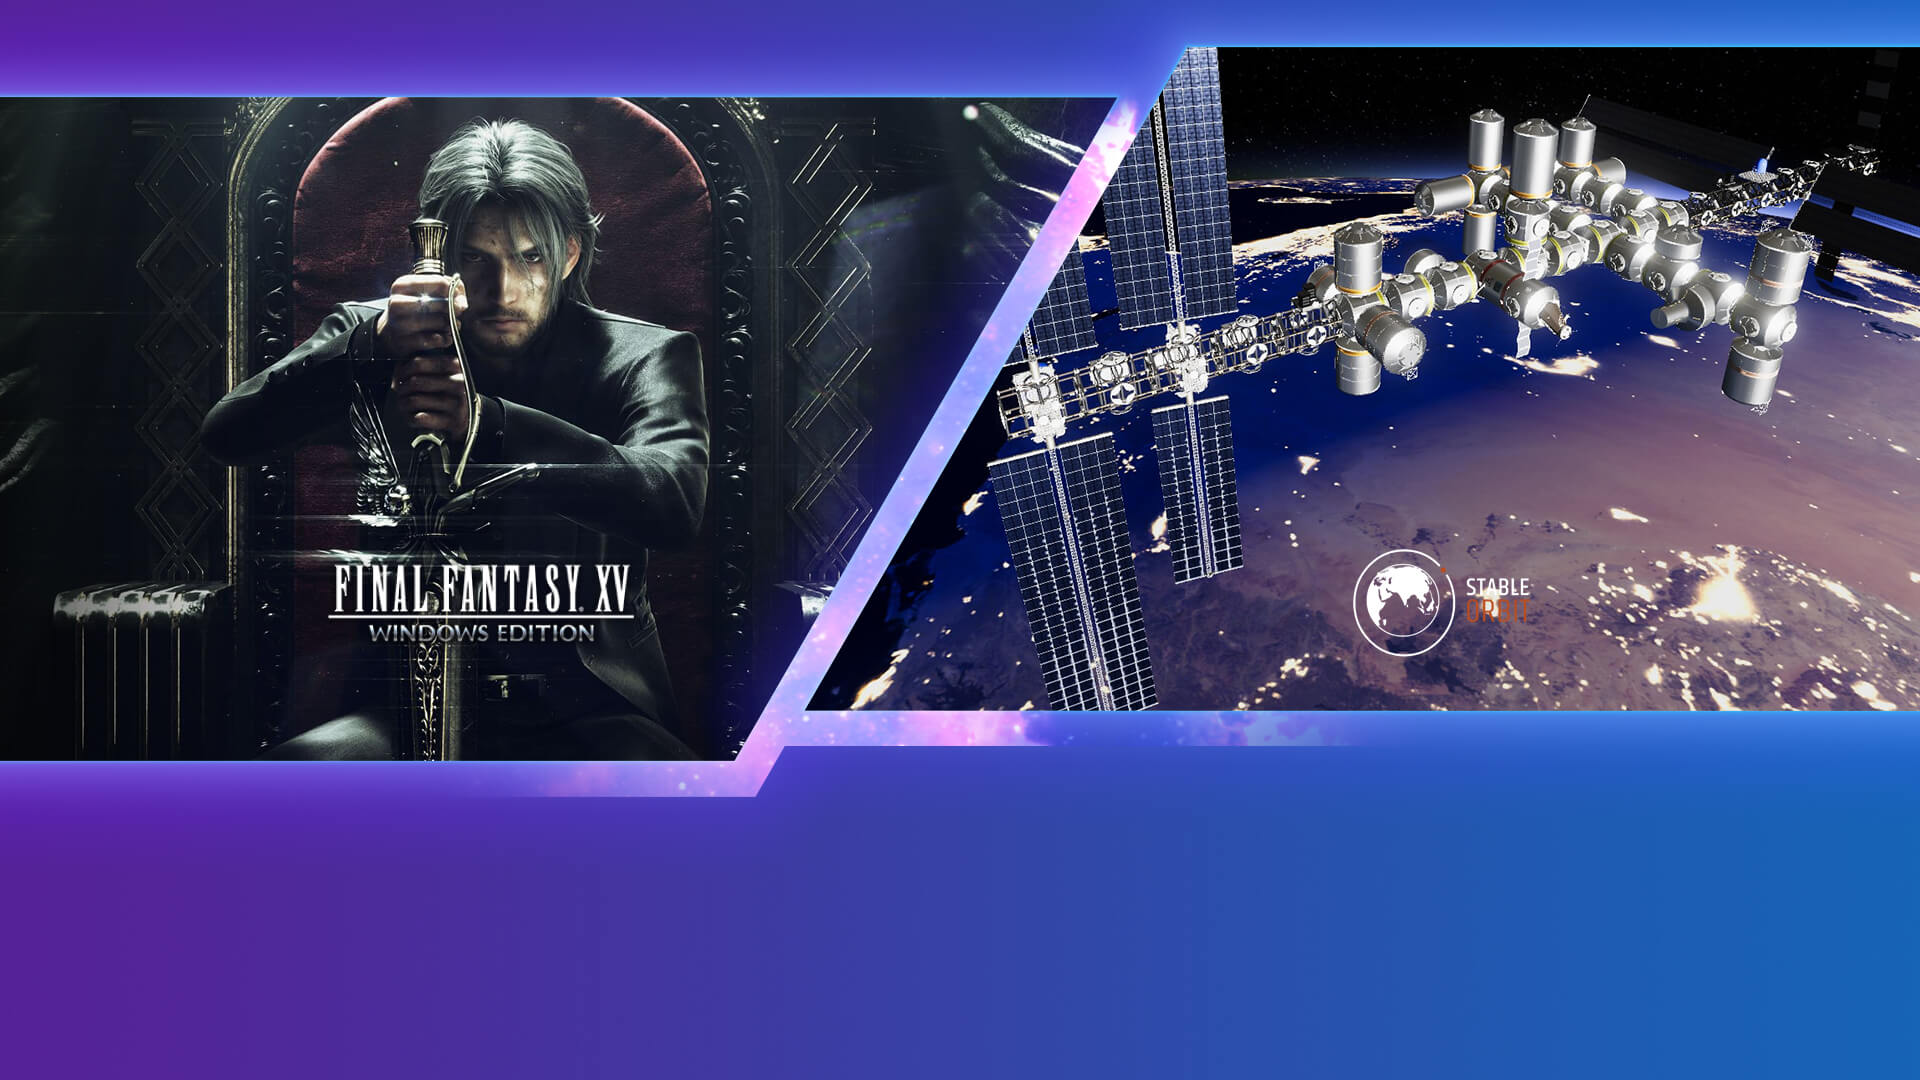 Final Fantasy XV windows edition and Stable Orbit